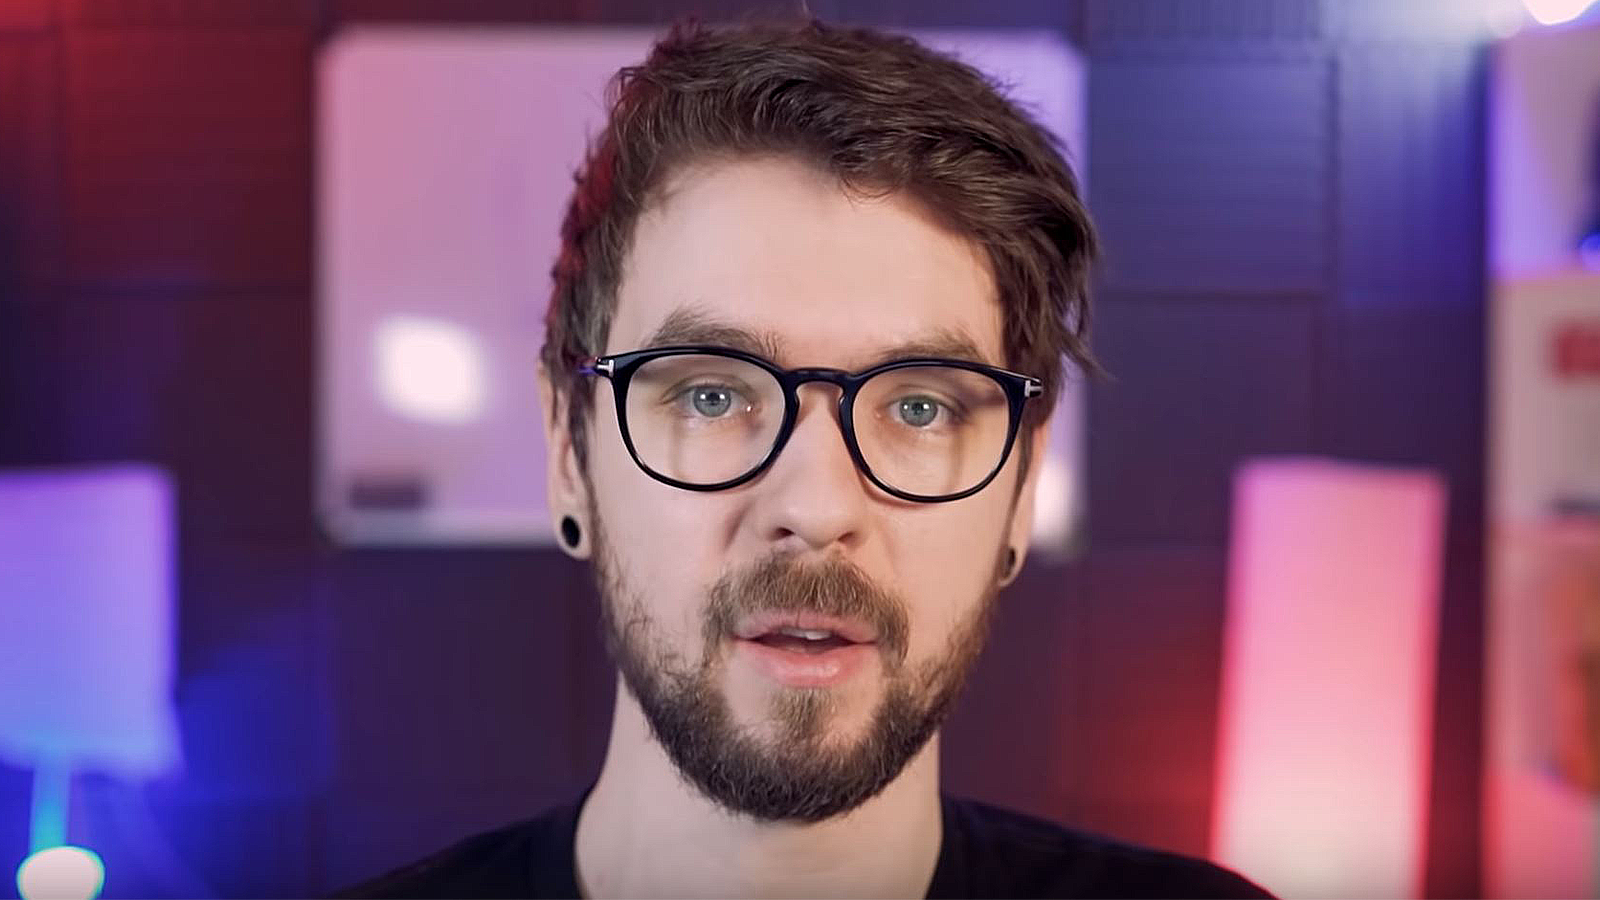 jacksepticeye, YouTube